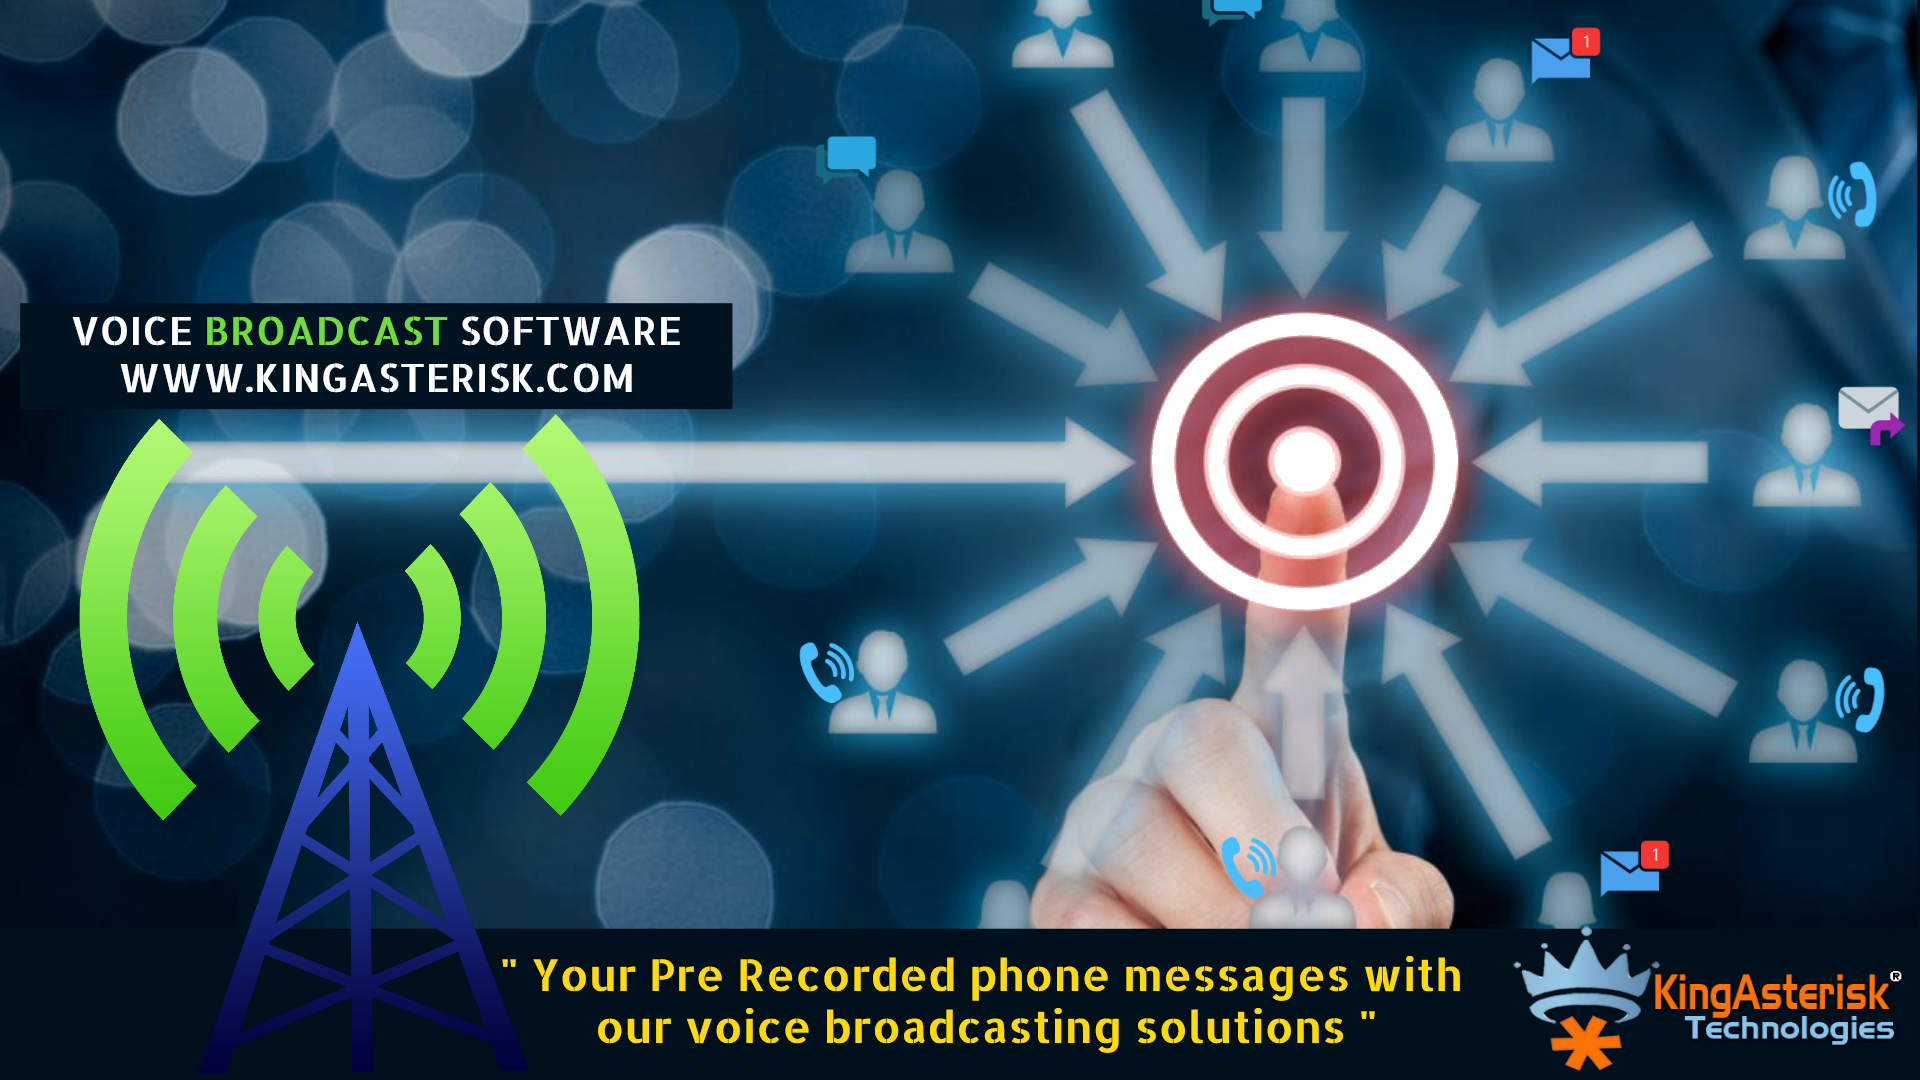 Voice Broadcasting Applications